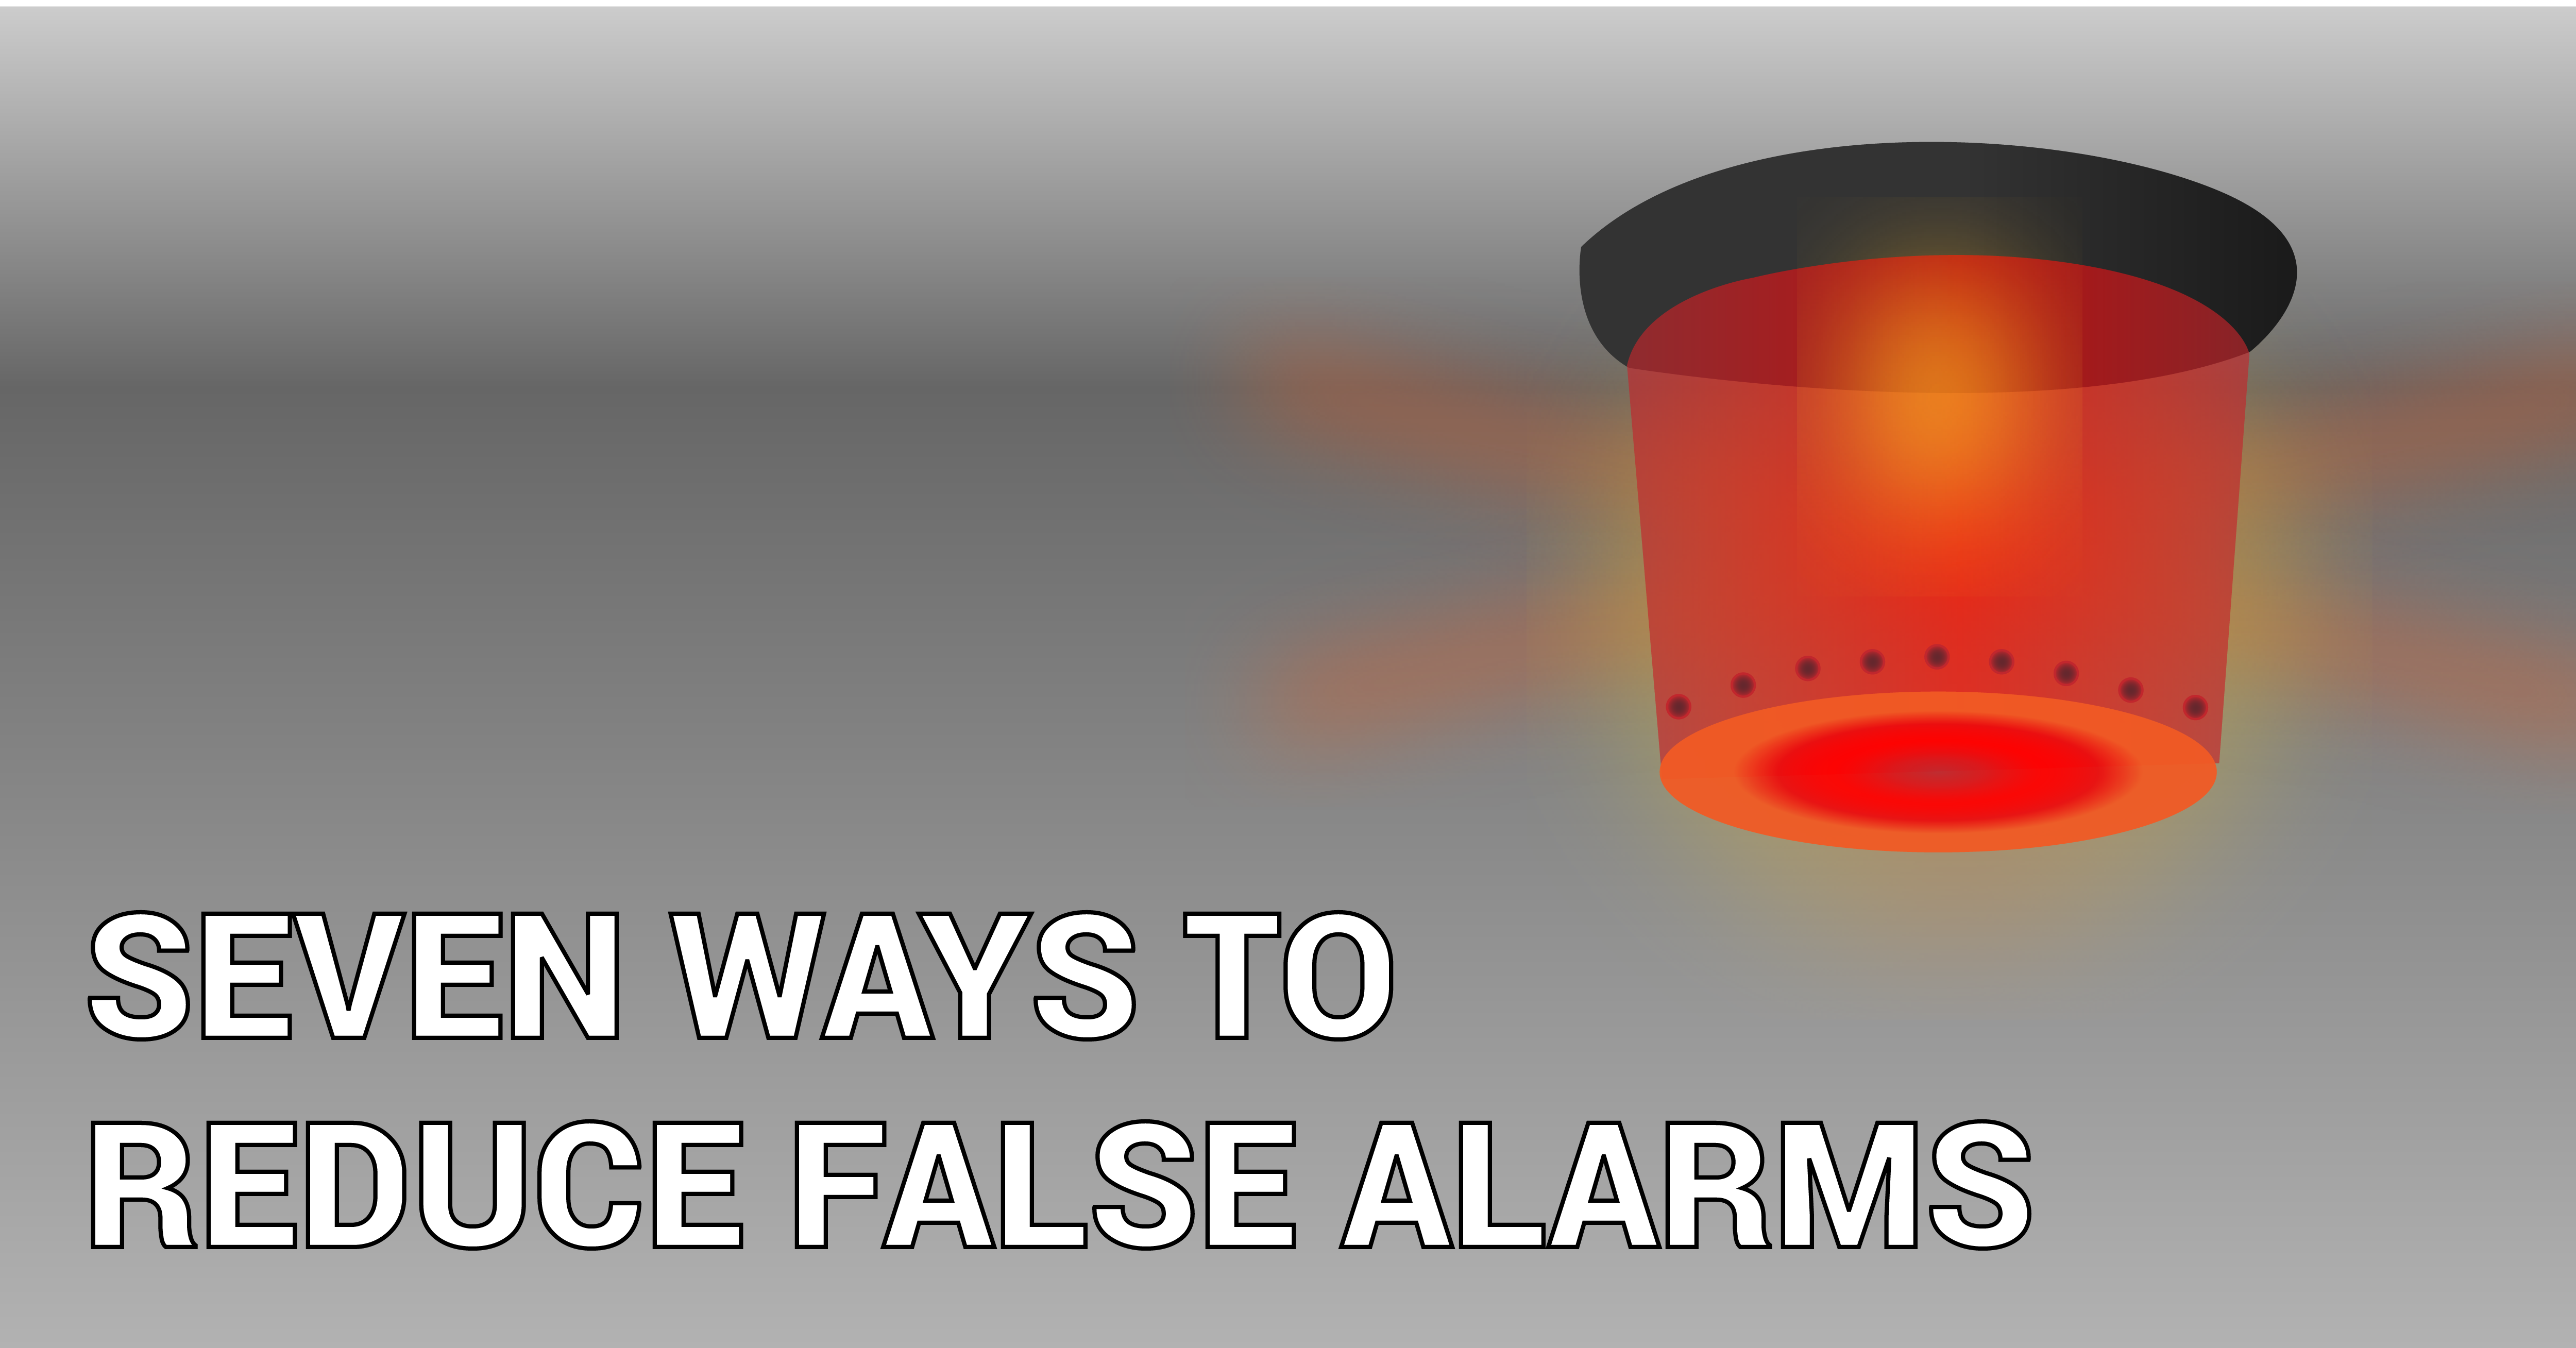 How to reduce false alarms